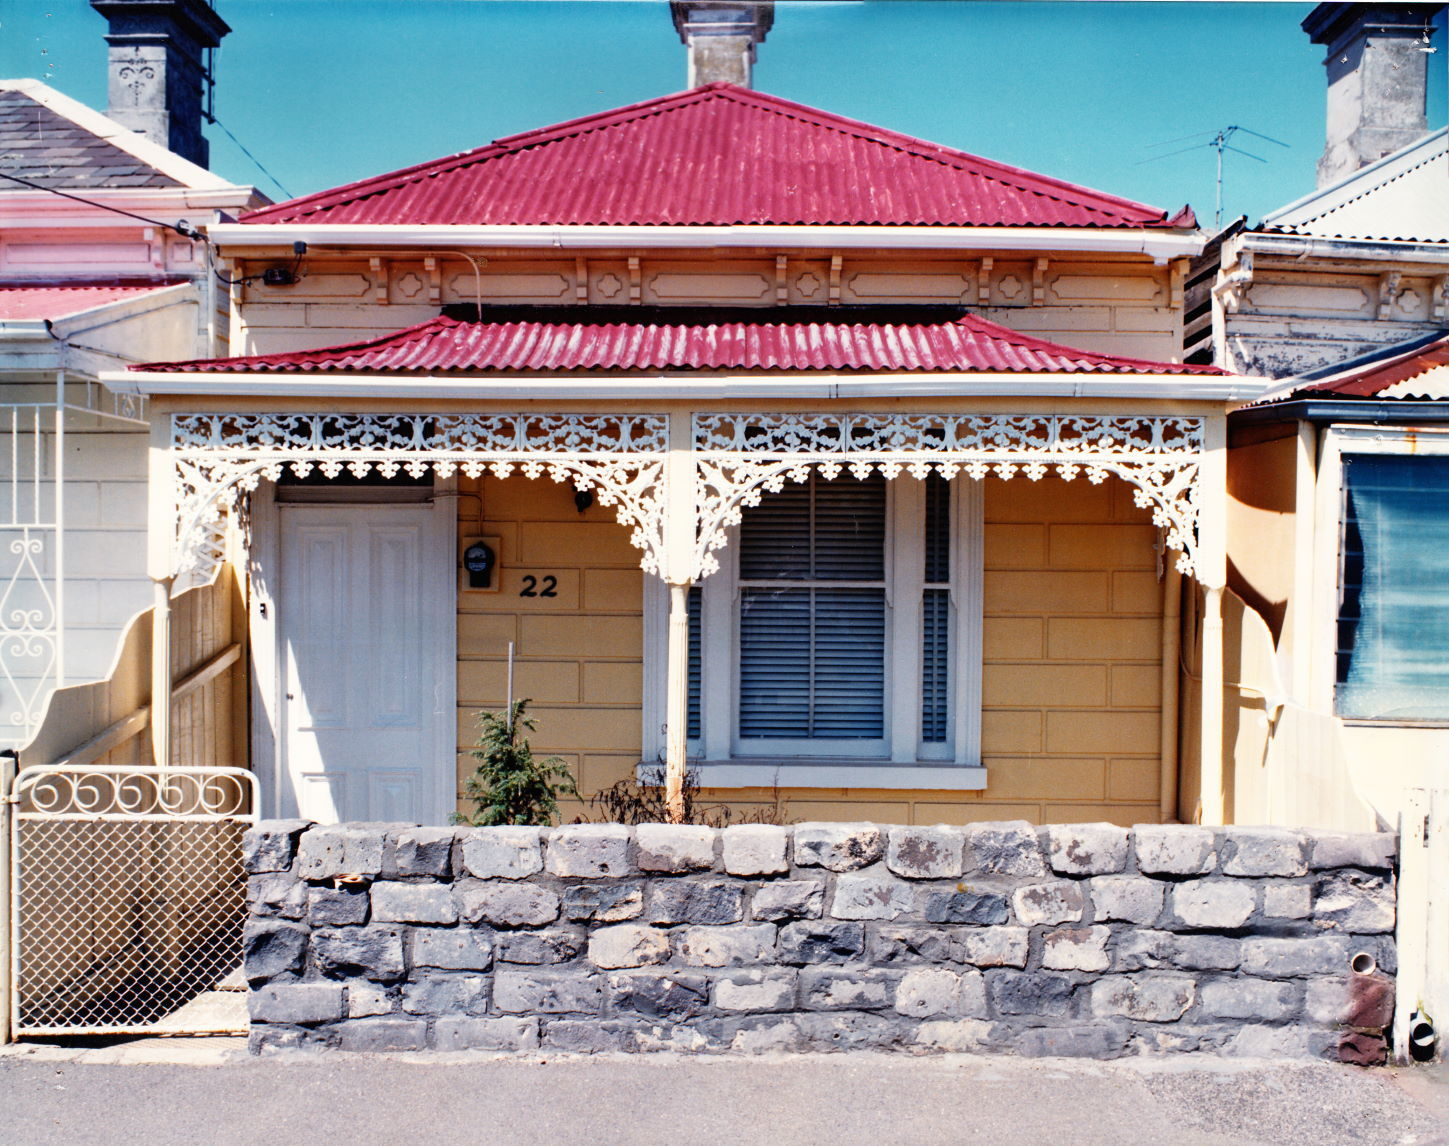 The First home of the Archives, 22 Marwick Street, Flemington, c.1978 (Photo: unidentified photographer), Photographs Collection